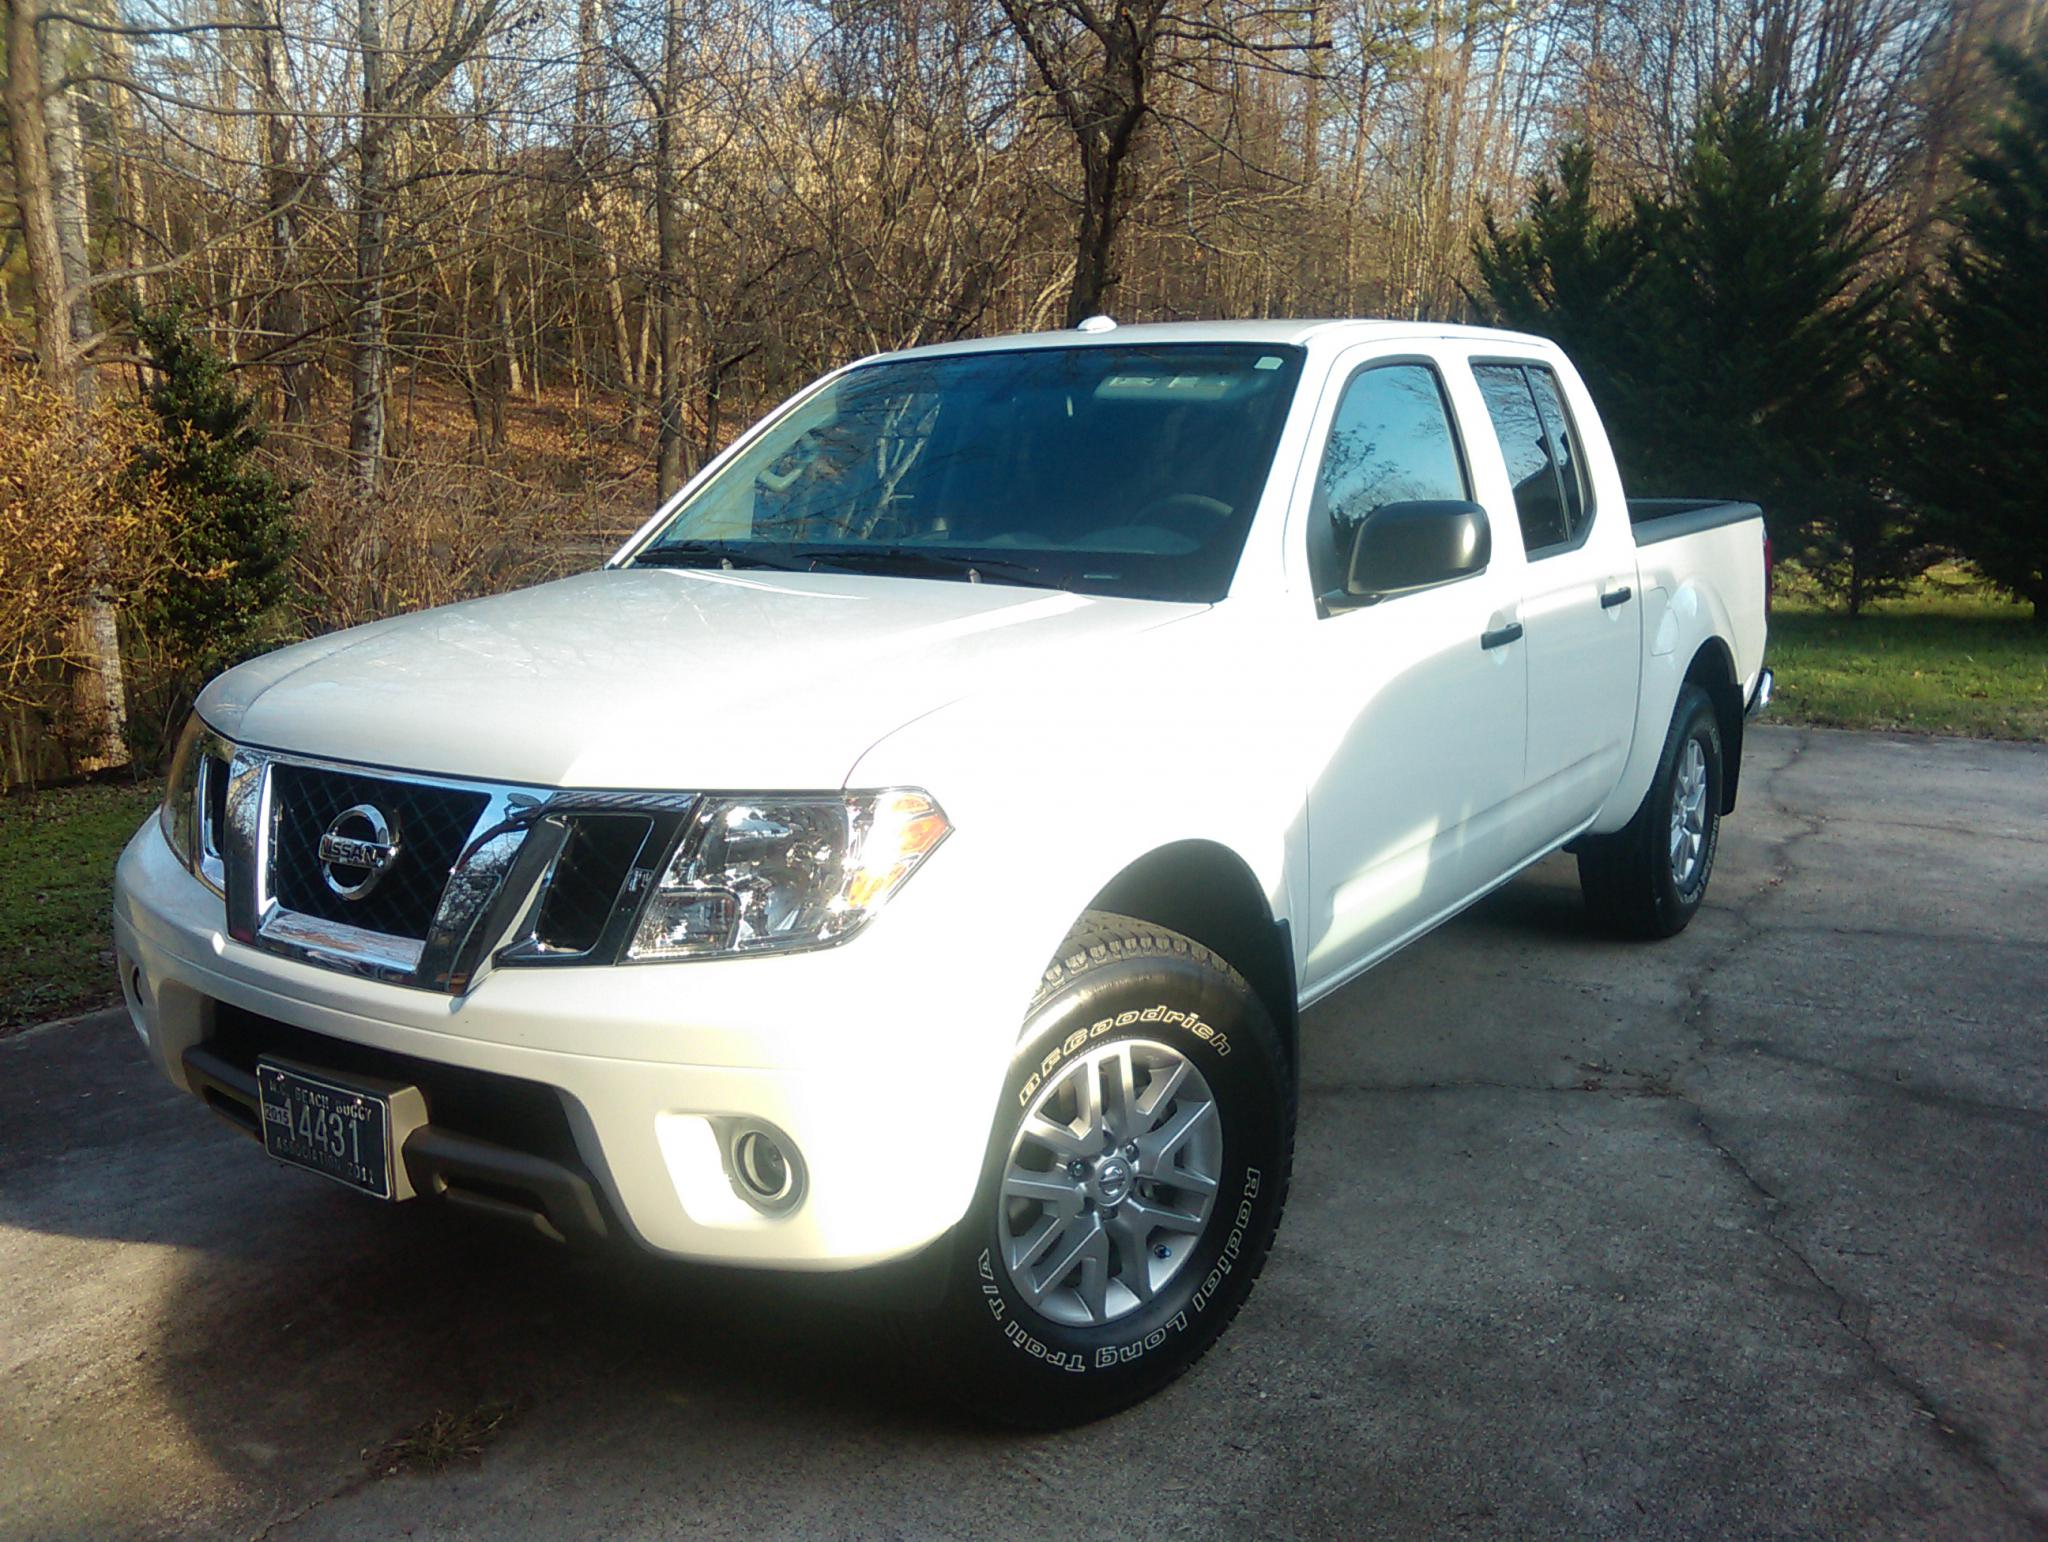 2016 white sv crew cab nissan frontier forum 2016 white sv crew cab imag1555g publicscrutiny Image collections